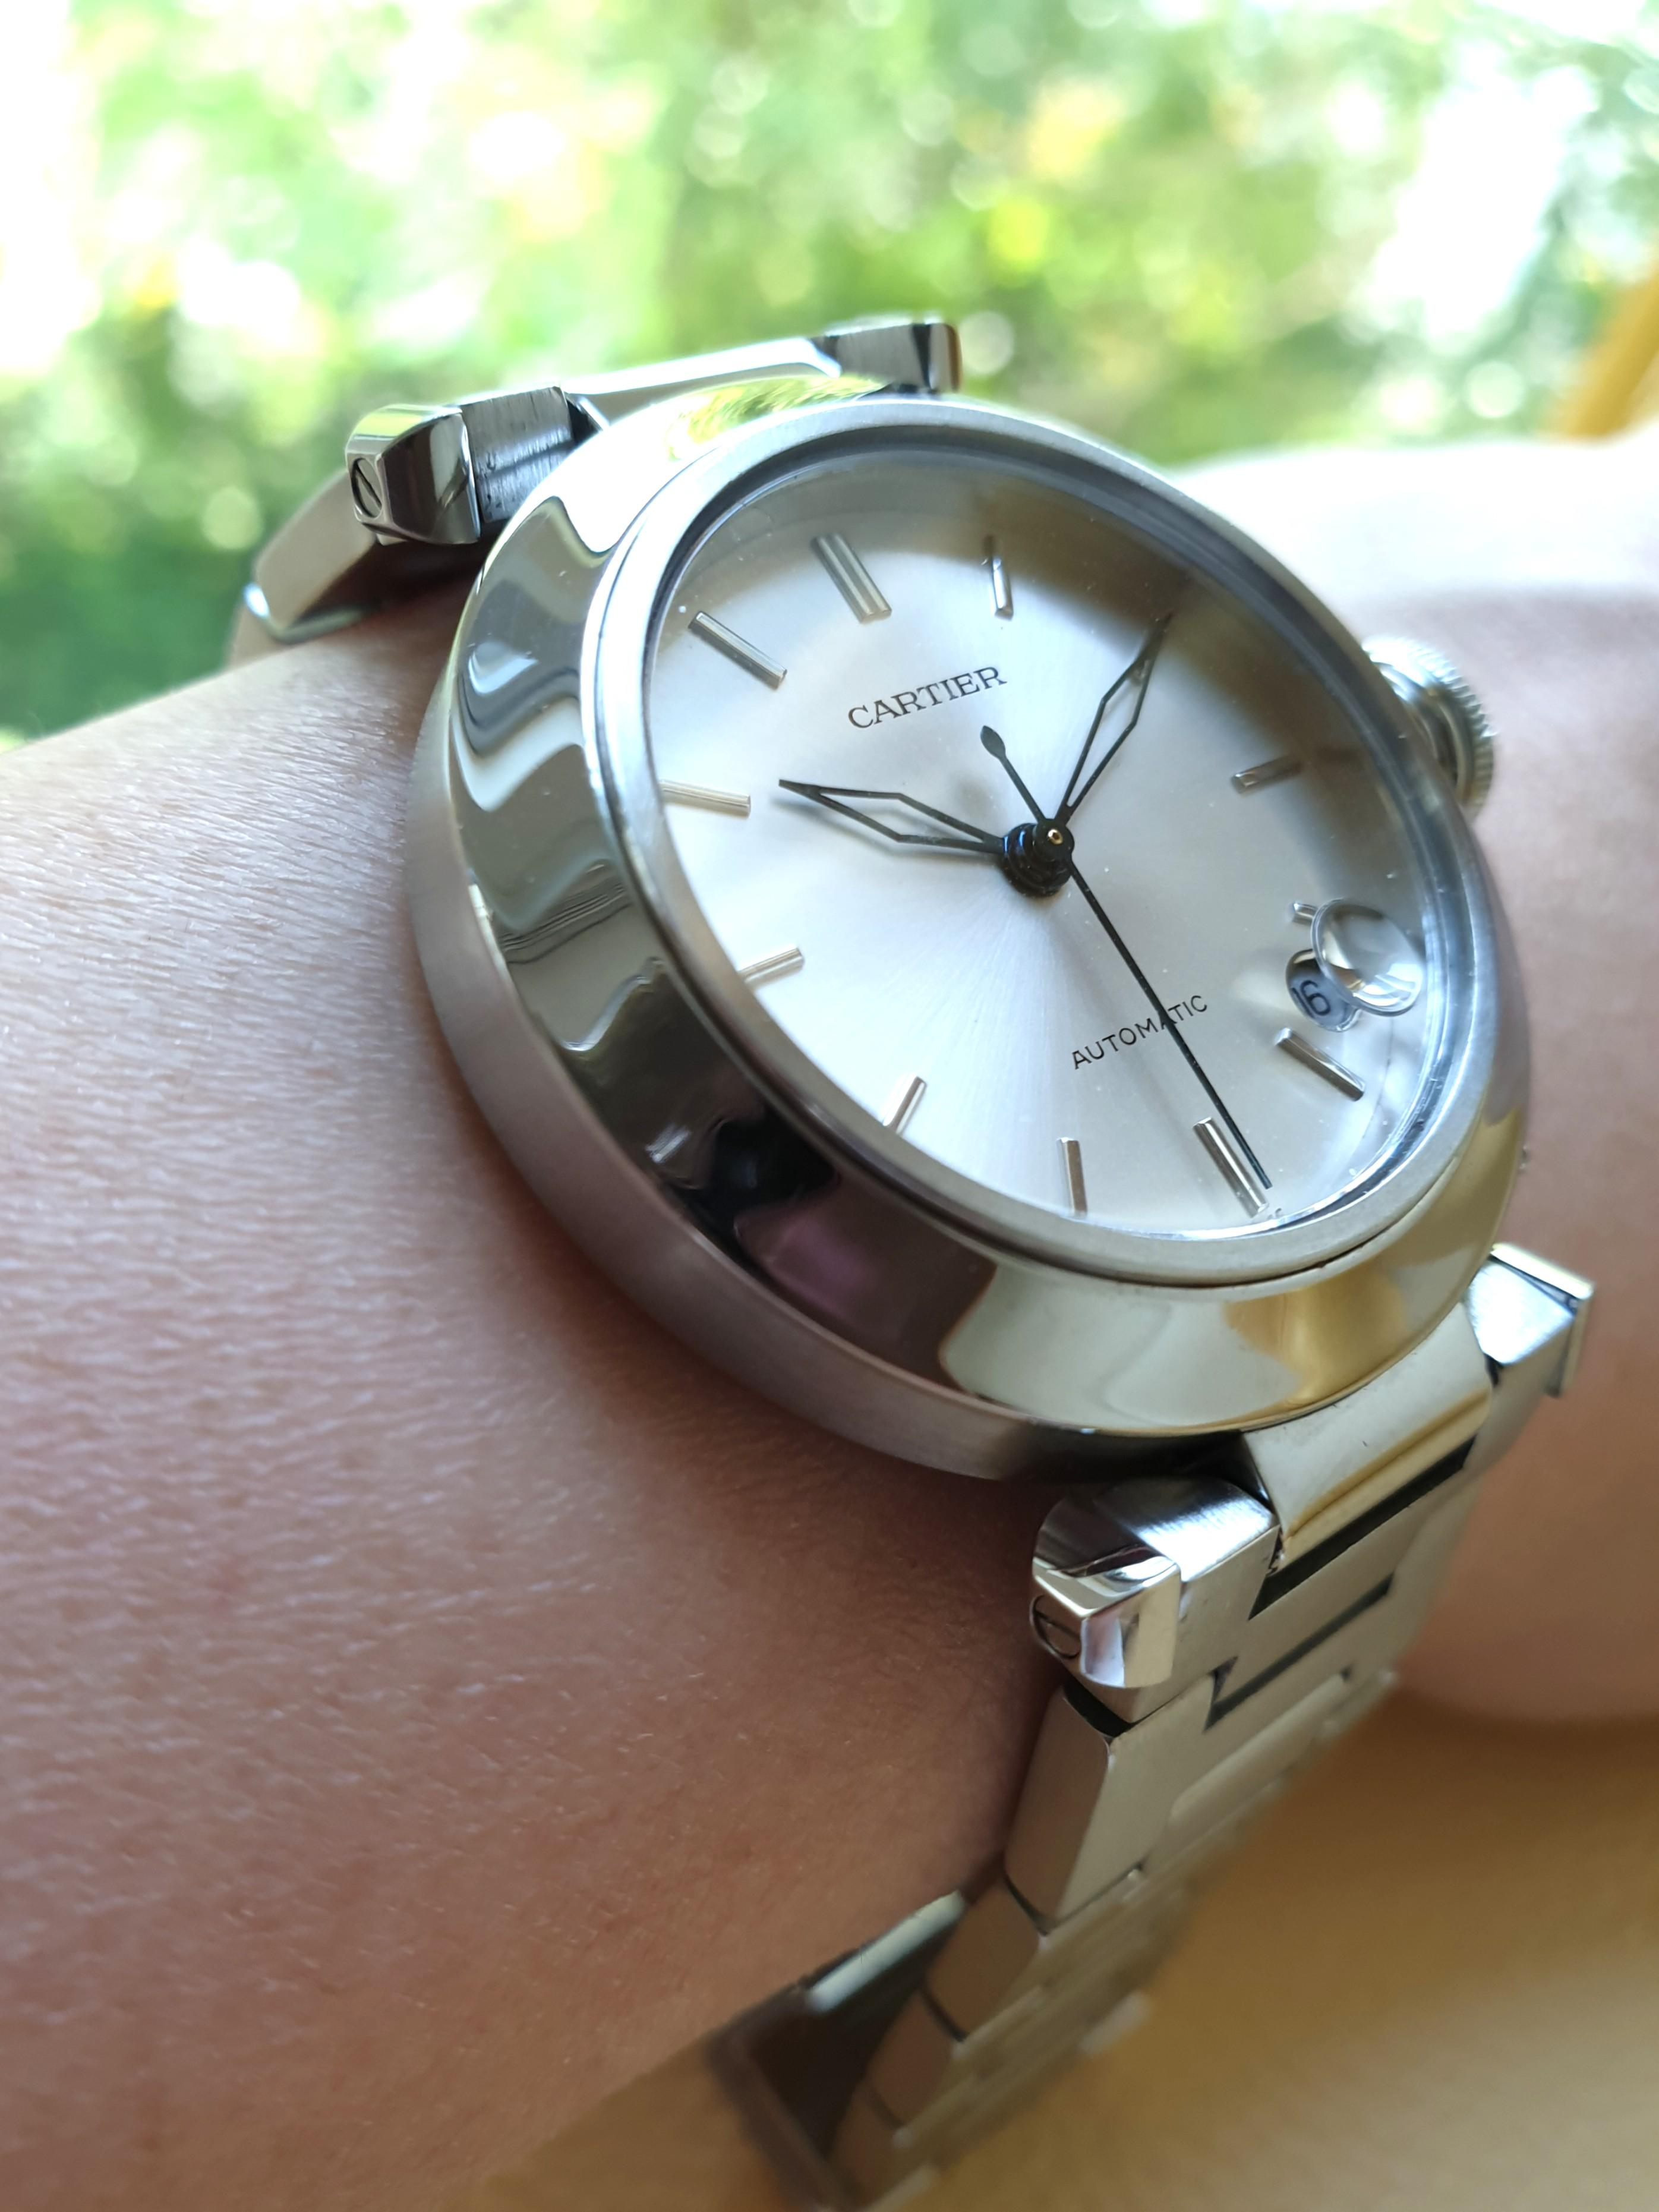 Cartier Pasha Silver Dial Date Stainless Steel Ladies                                                                                       Rolex Tudor Cartier Omega Iwc AP Chopard Tag Heuer Apple